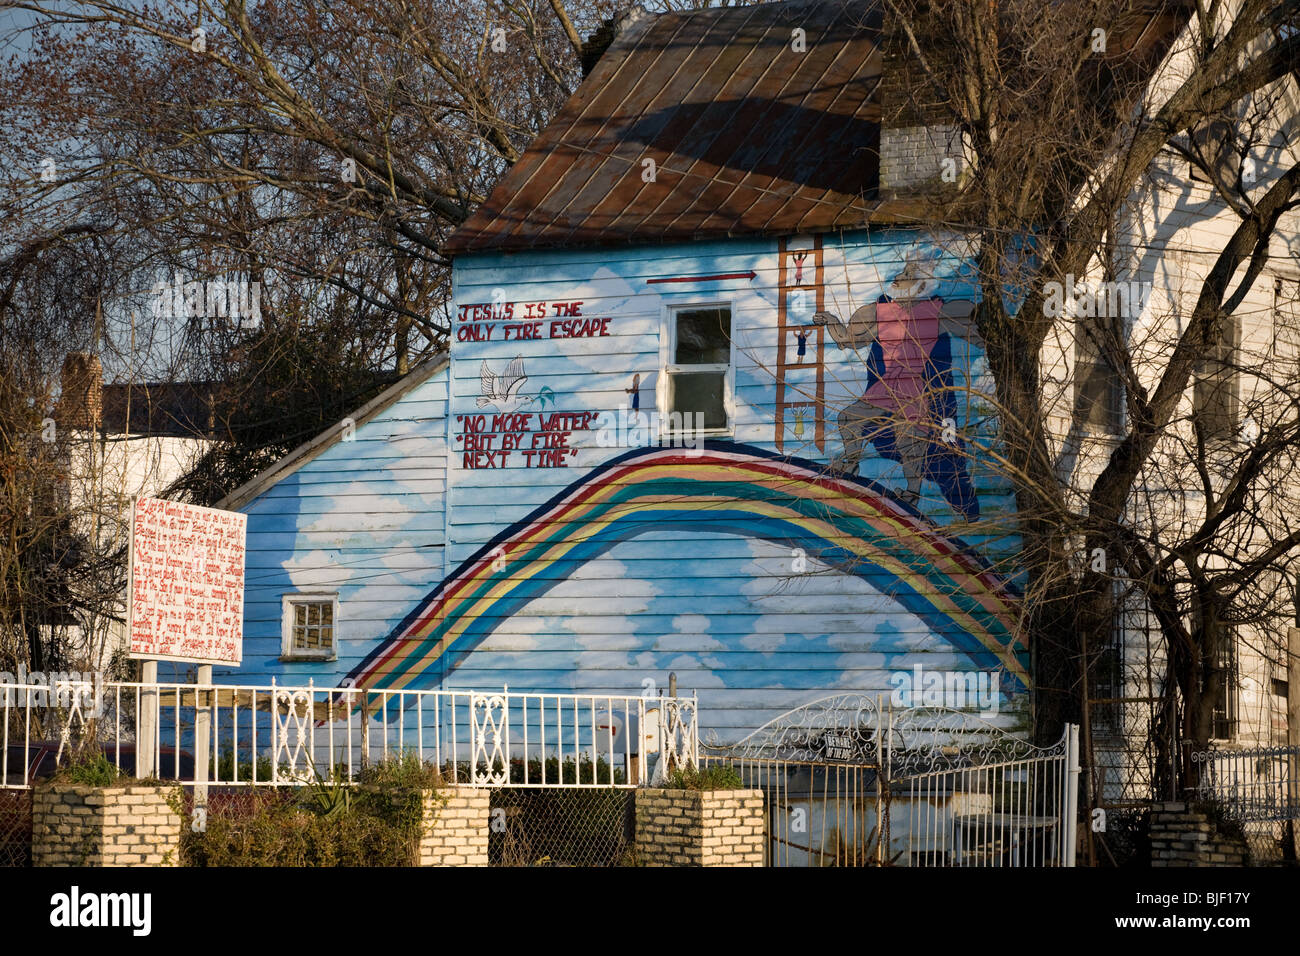 Religious fervor in derelict property, Charleston, South Carolina - Stock Image